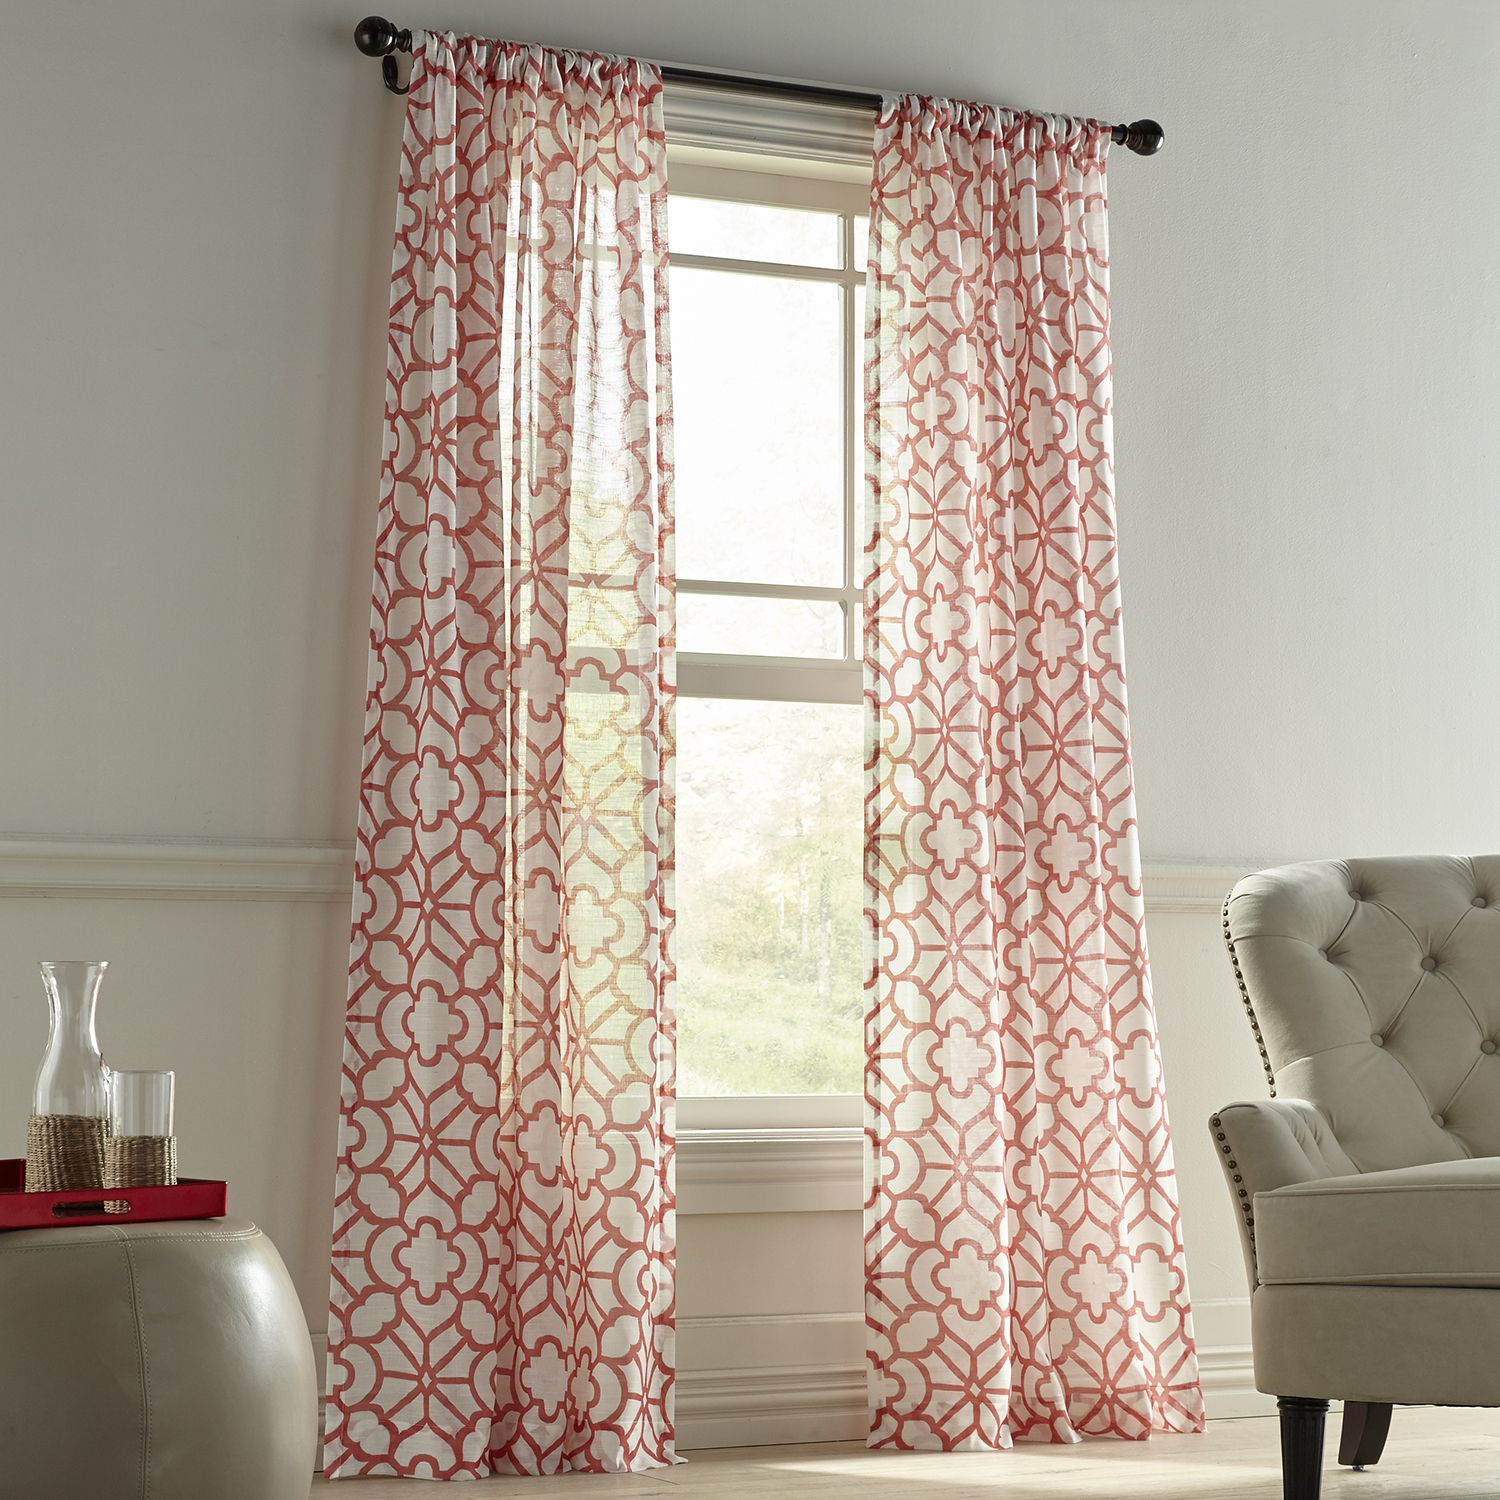 Our Highlife Sheer Curtain Adds Just The Right Wispy Attitude And Vibrant Color To Your Room Crafted Of Easy Care Polyester It Unlined Has Rod Pocket